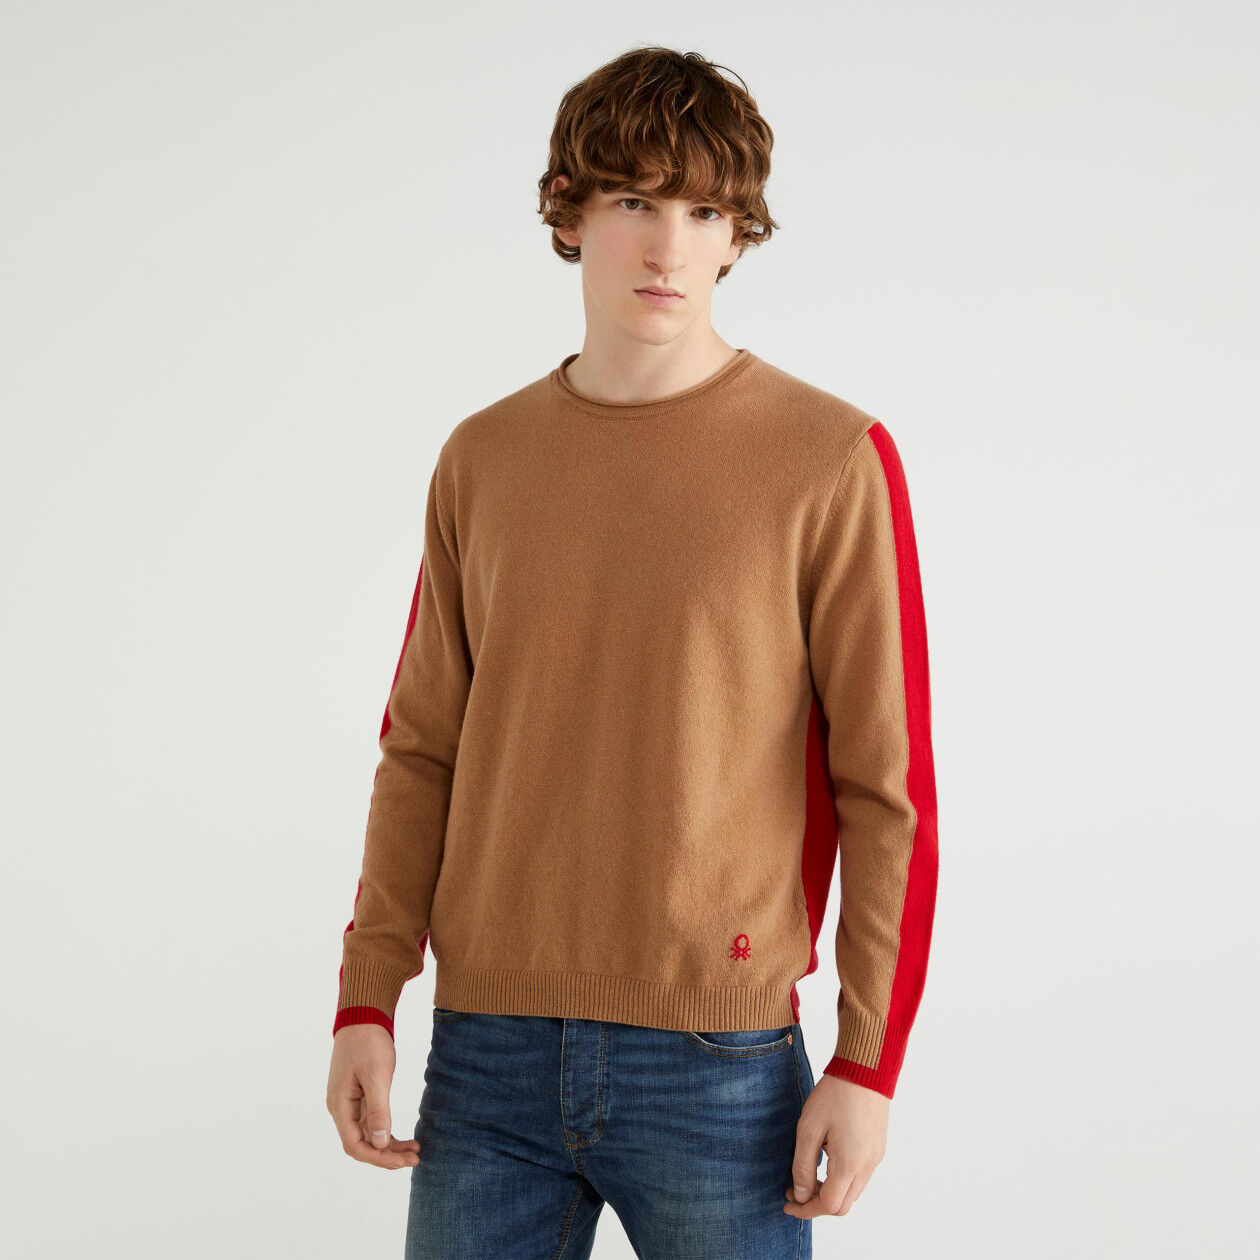 Two-tone sweater